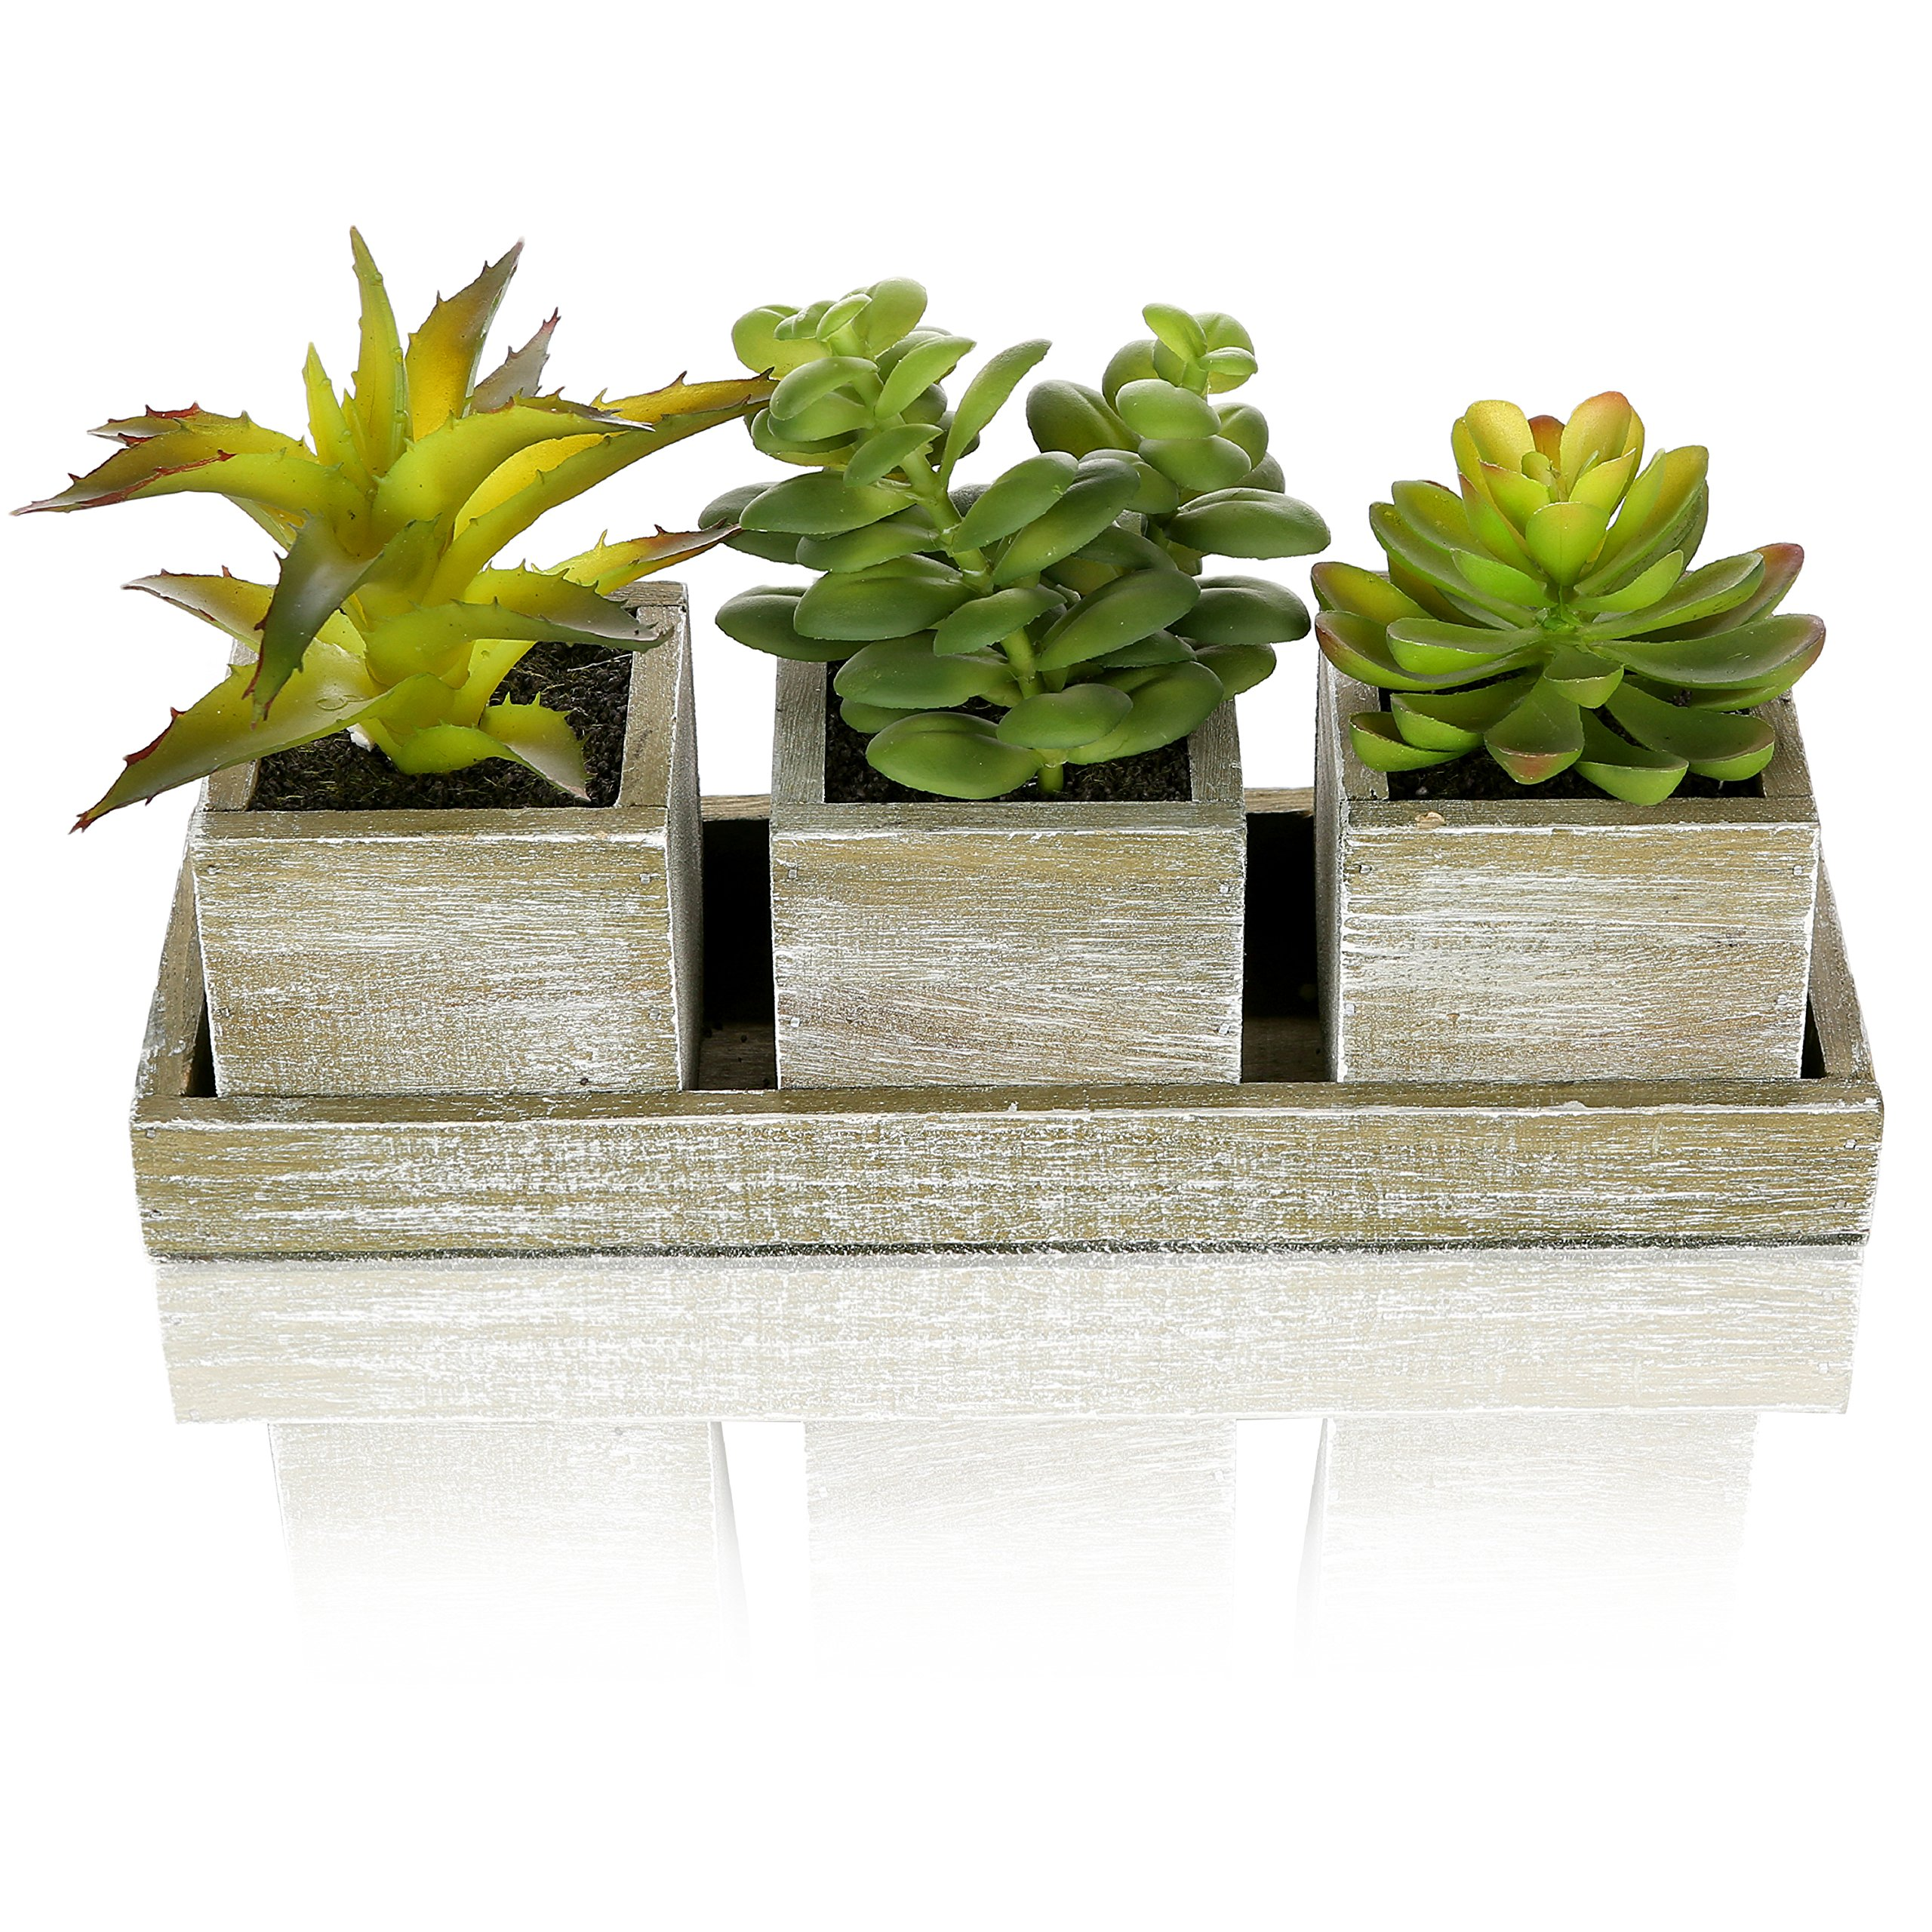 MyGift Set of 3 Realistic Artificial Succulent Plants w/Rustic Style Wood Square Pots & Rectangular Tray